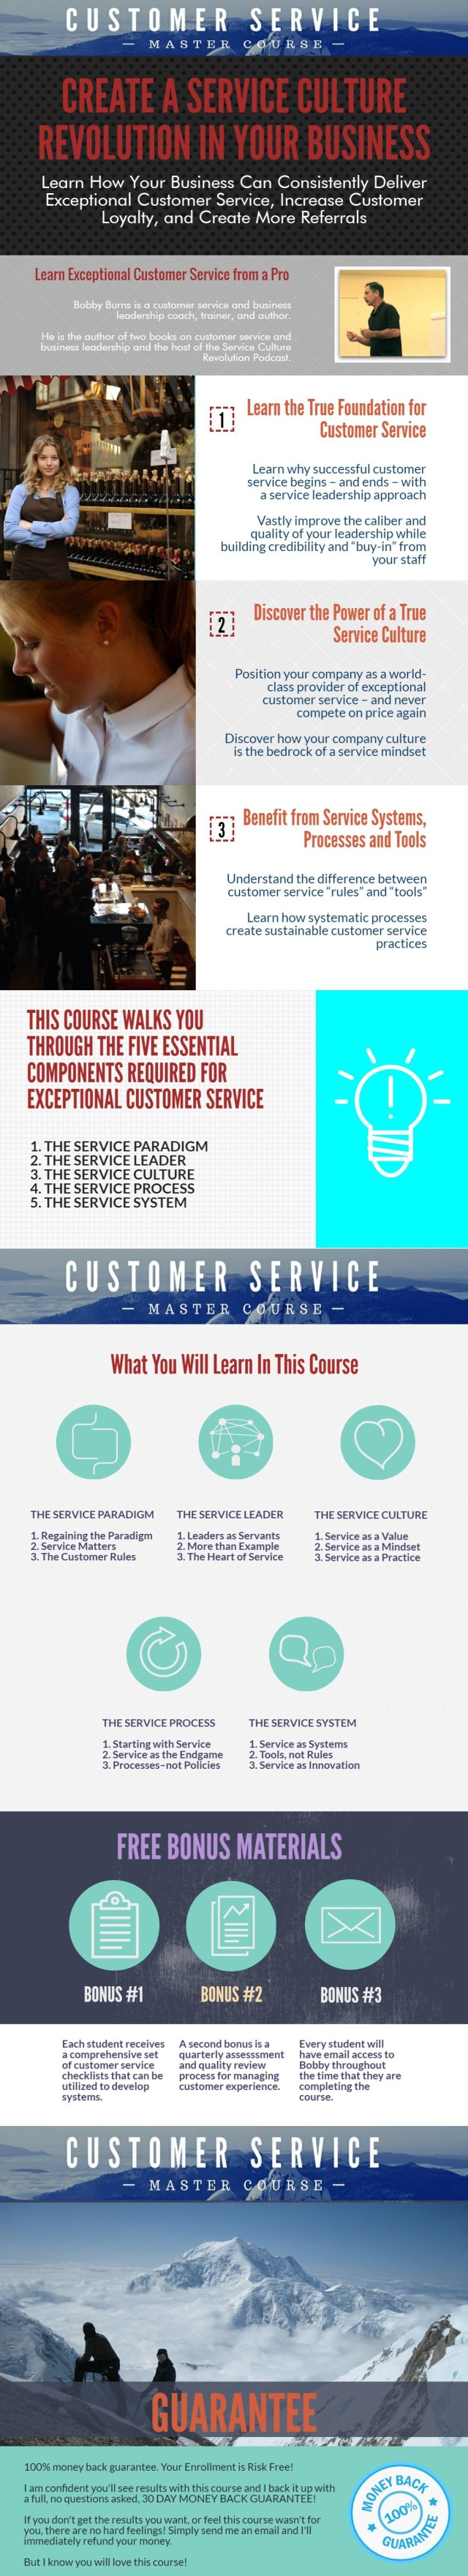 customer-service-master-course-copy-lrg